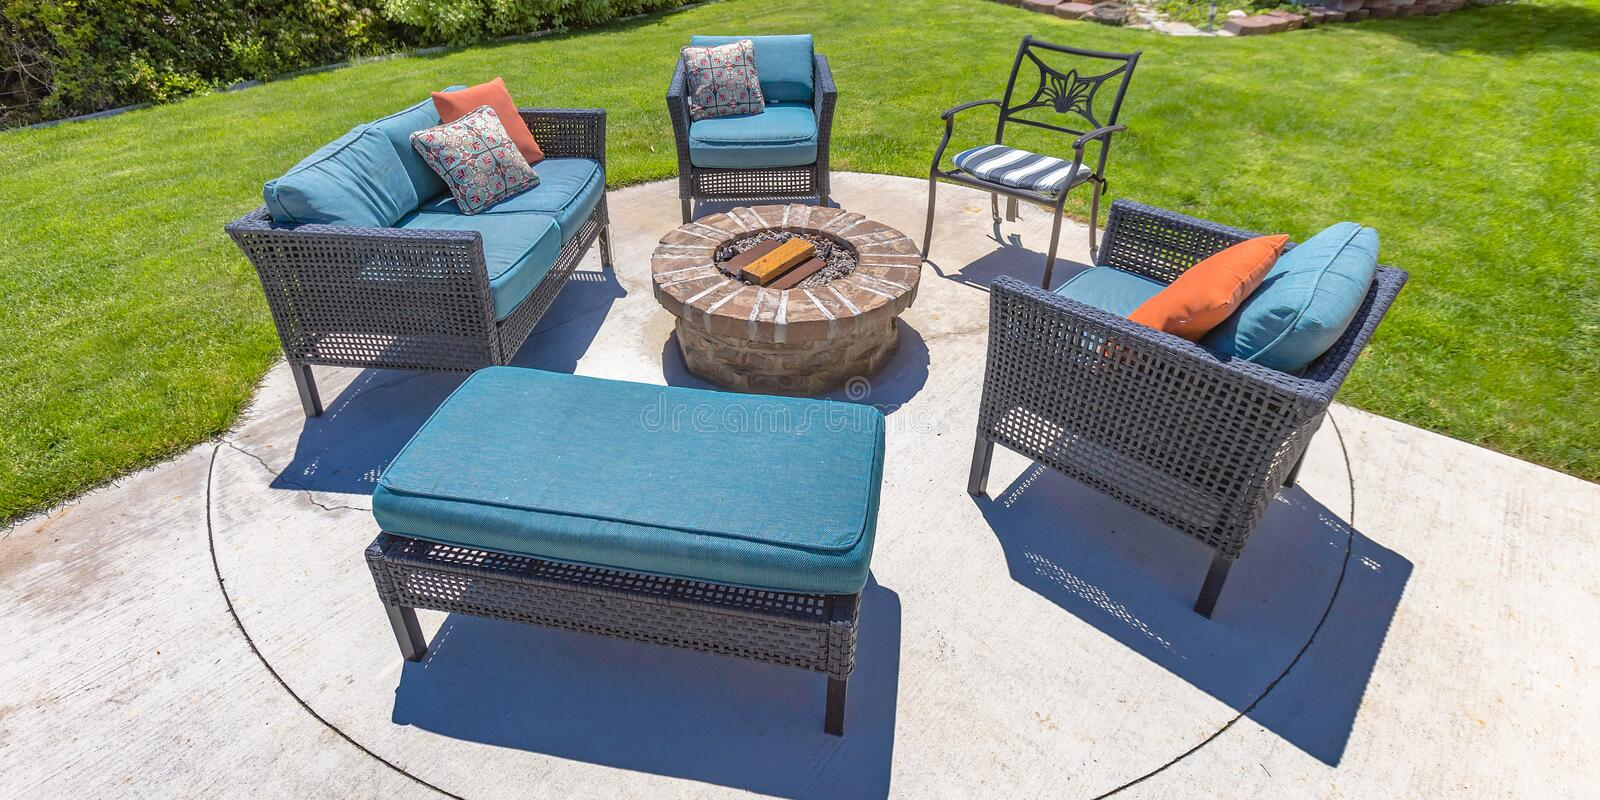 Circular fire pit and chairs on a sunny backyard. A circular stone fire pit surrounded by chairs with blue cushions and pillows. The fire pit is on a backyard royalty free stock photography